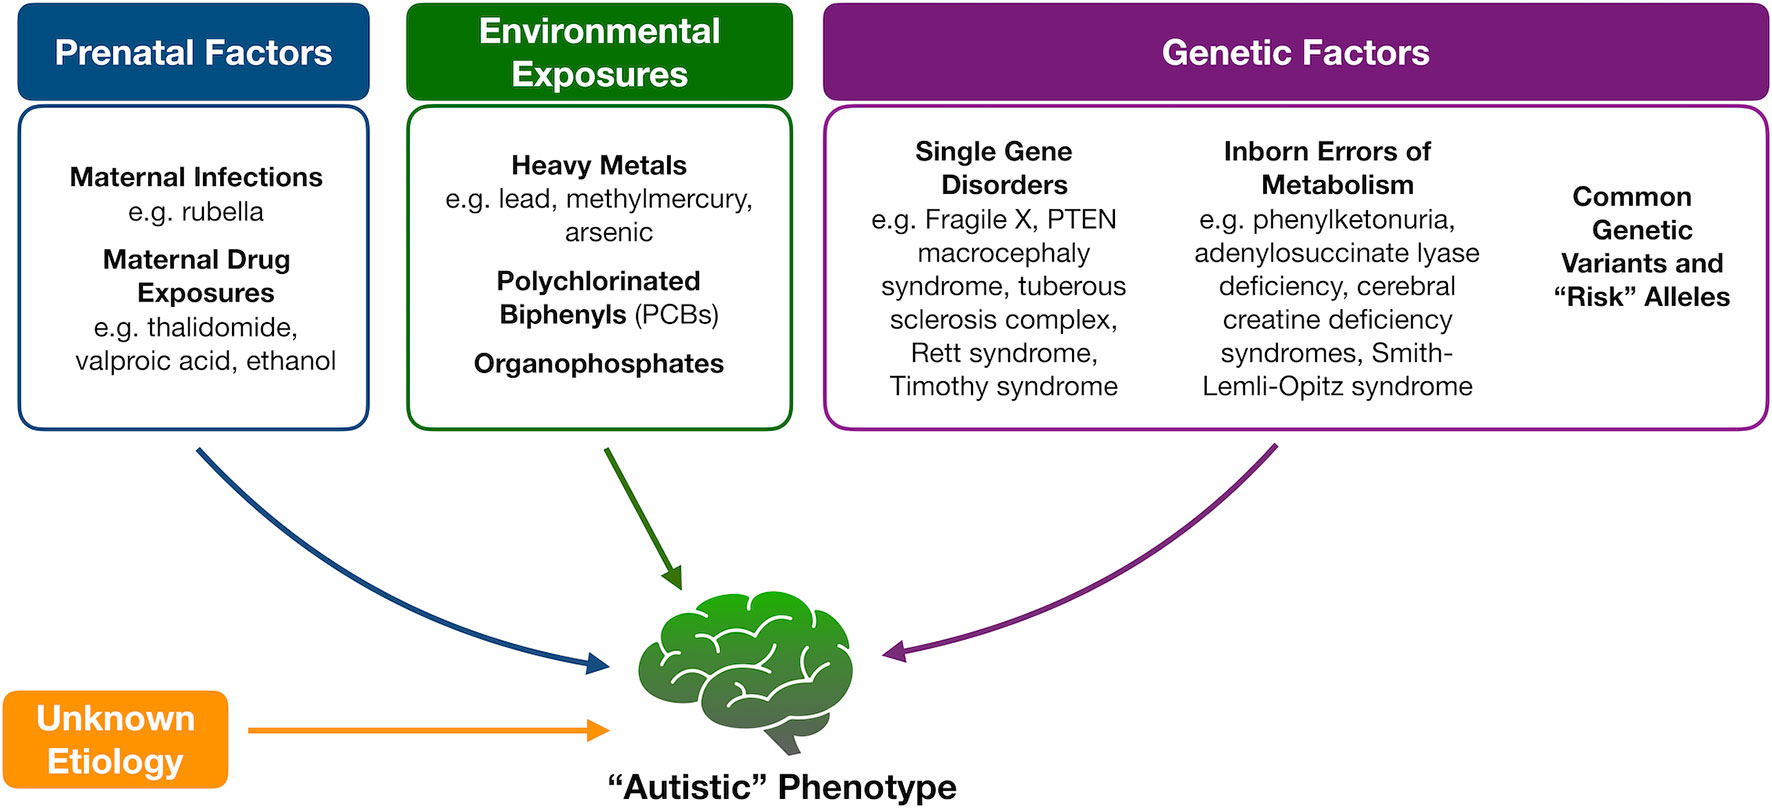 Screening For Autism Spectrum Disorders State Of The Art In Europe >> Frontiers Untargeted Metabolomics For Autism Spectrum